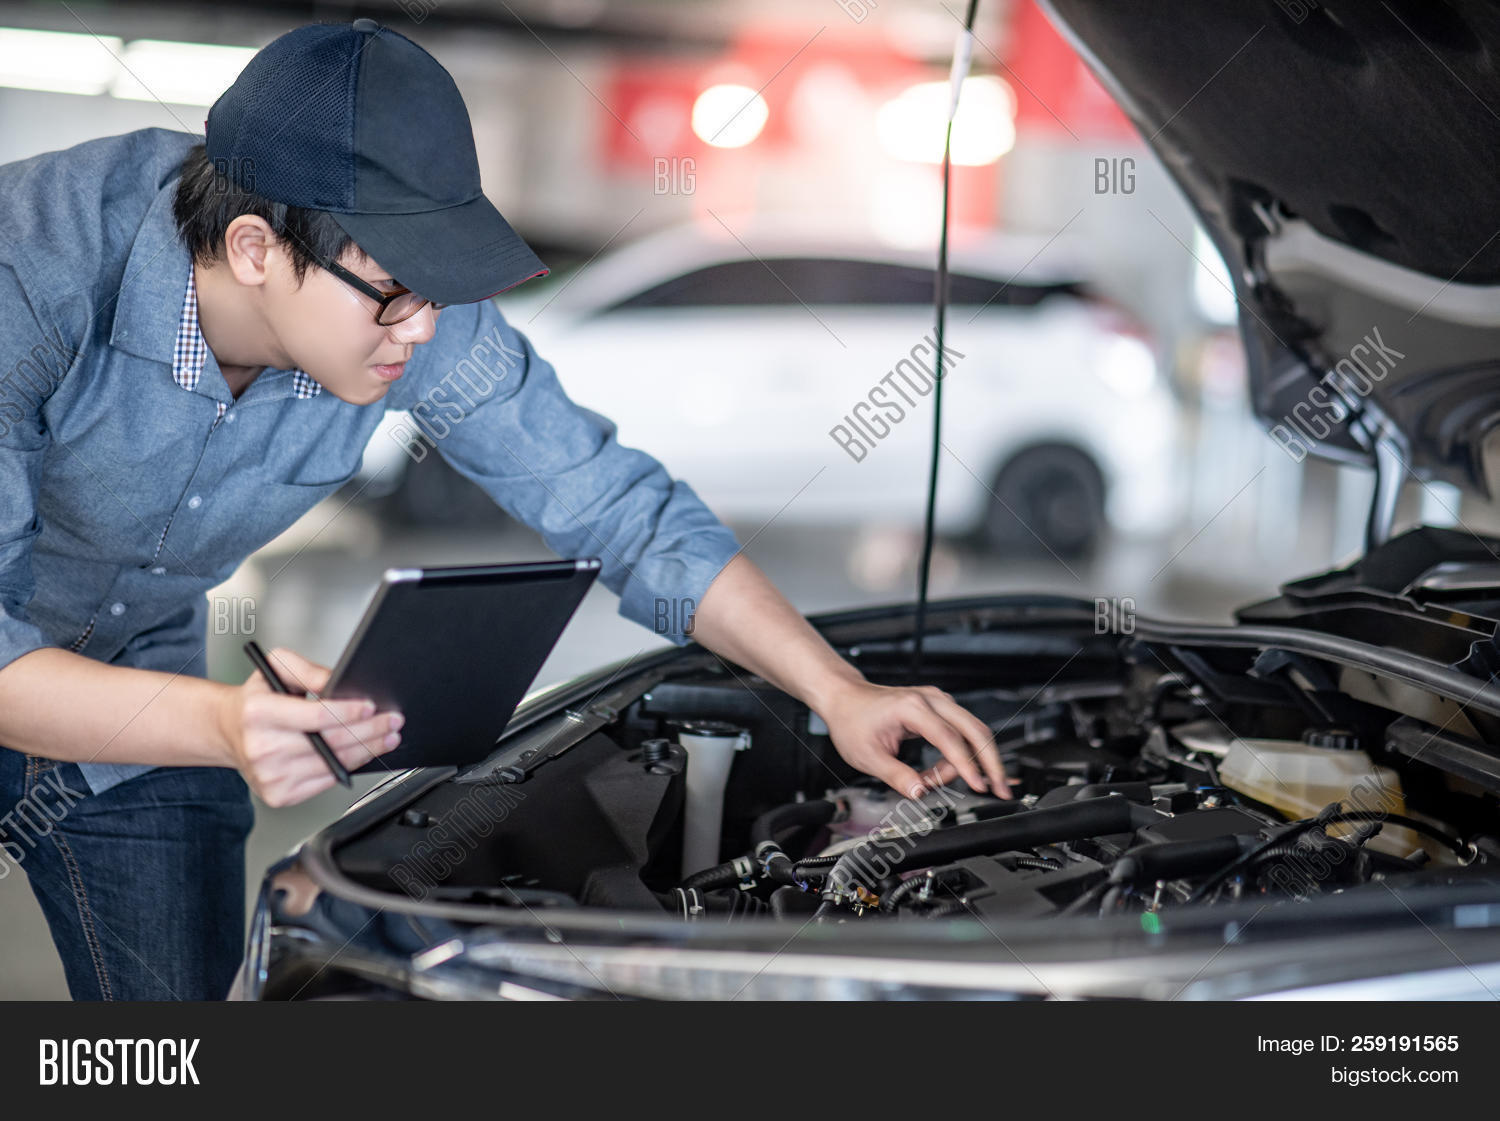 asian,auto,automobile,automotive,bonnet,business,car,check,checking,diagnosis,diagnostic,engine,engineer,engineering,equipment,fix,garage,handyman,hood,industry,inspection,job,machine,maintenance,male,man,mechanic,mechanical,motor,person,repair,repairman,report,safety,service,servicing,shop,specialist,station,tablet,technician,tool,transport,transportation,up,vehicle,work,worker,working,workshop